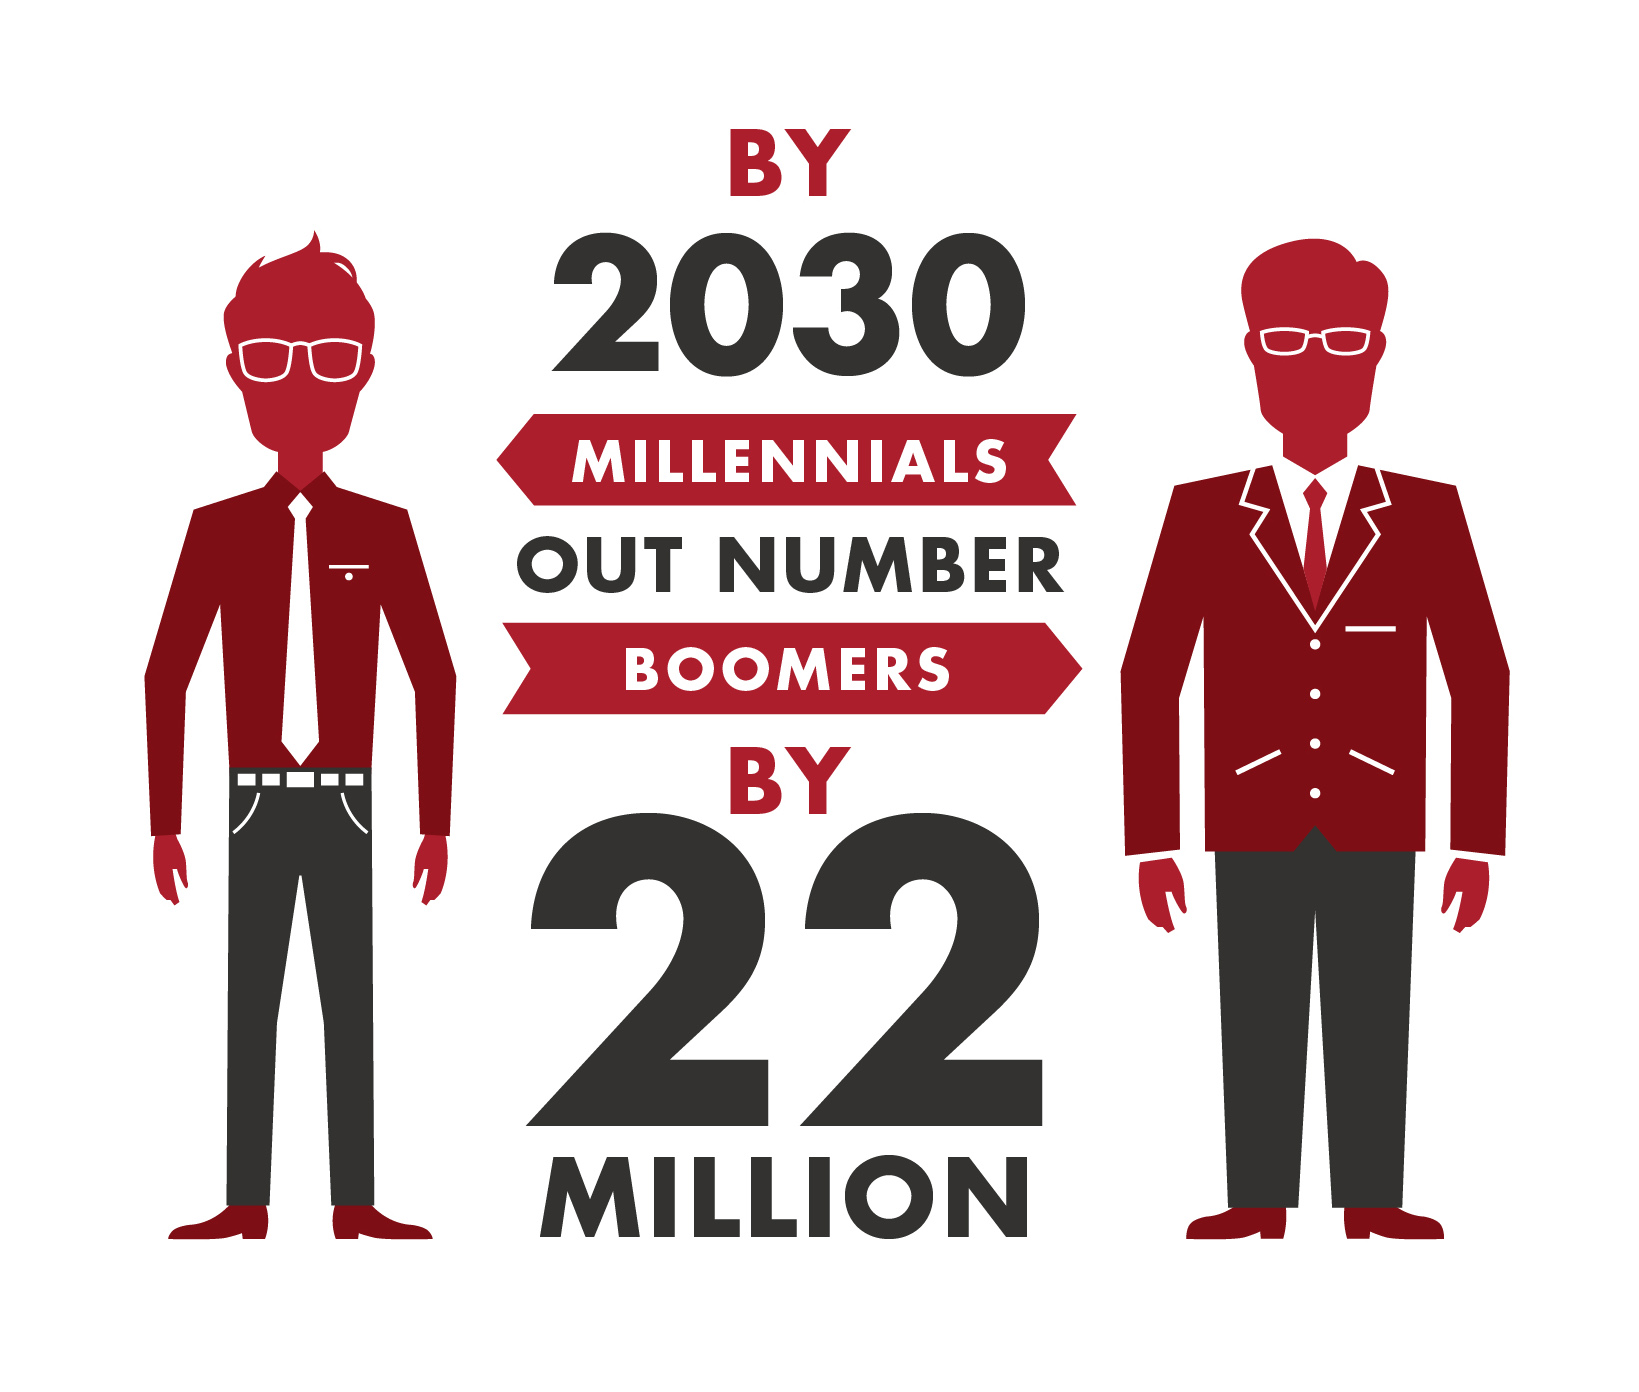 Millennials will outnumber Baby Boomers by 2030.